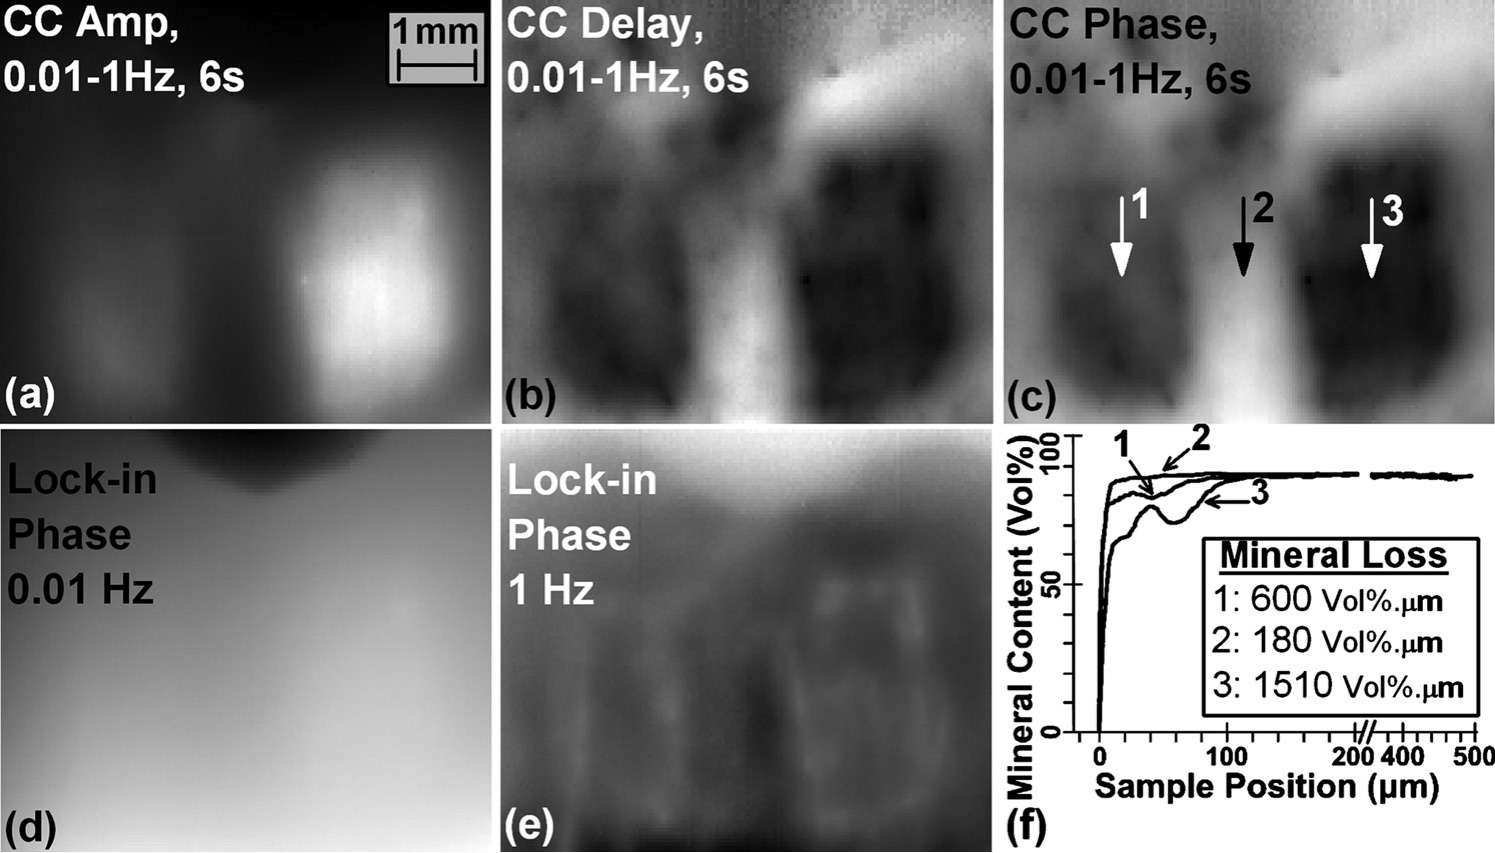 Thermophotonic radar and phase lock-in imaging